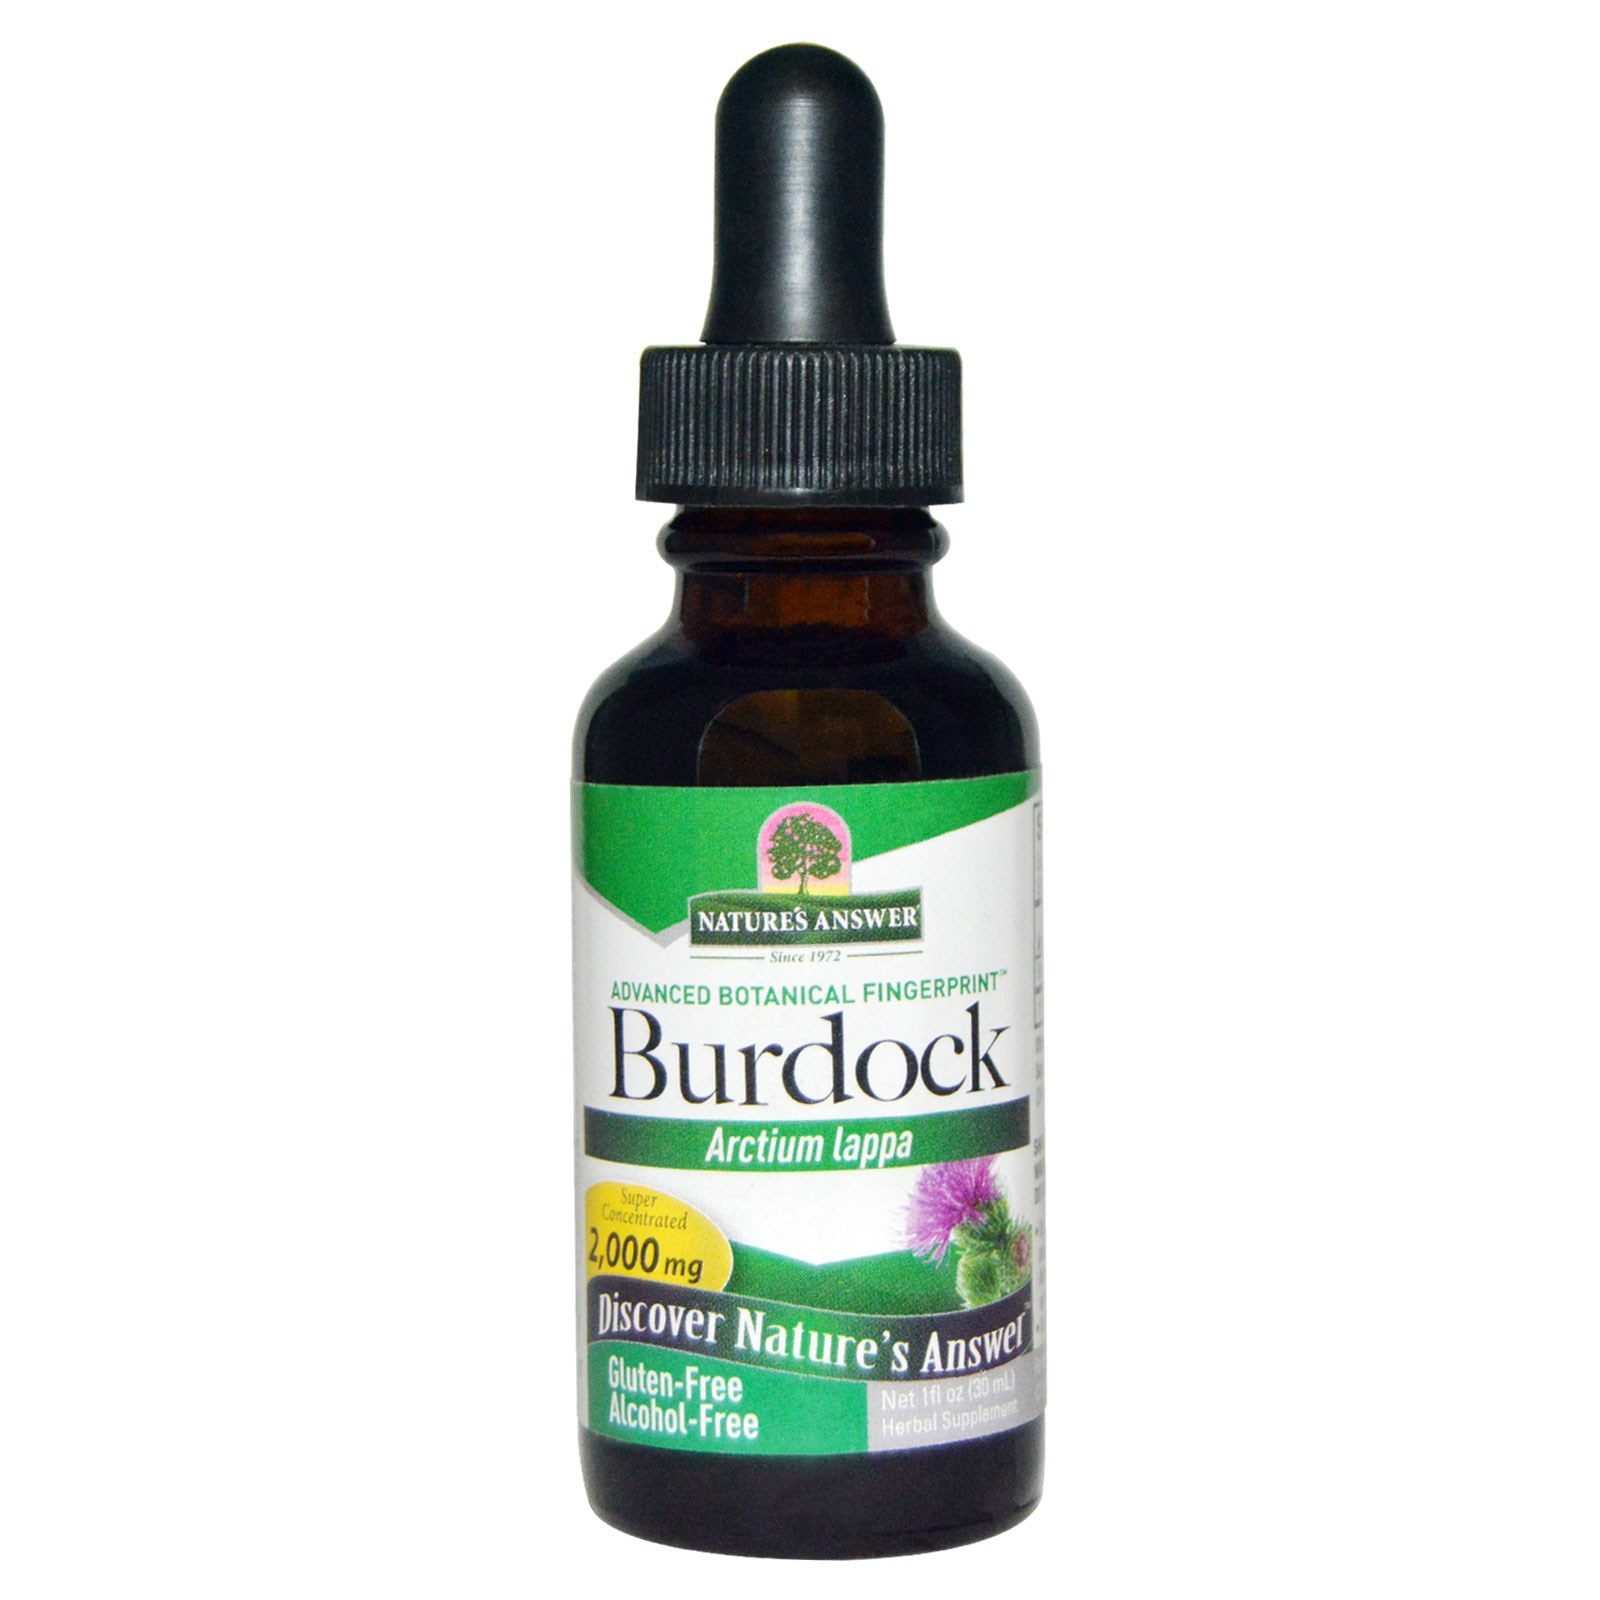 Image of Burdock, Alcohol-Free, 2000 mg (30 ml) - Nature's Answer 0083000005848